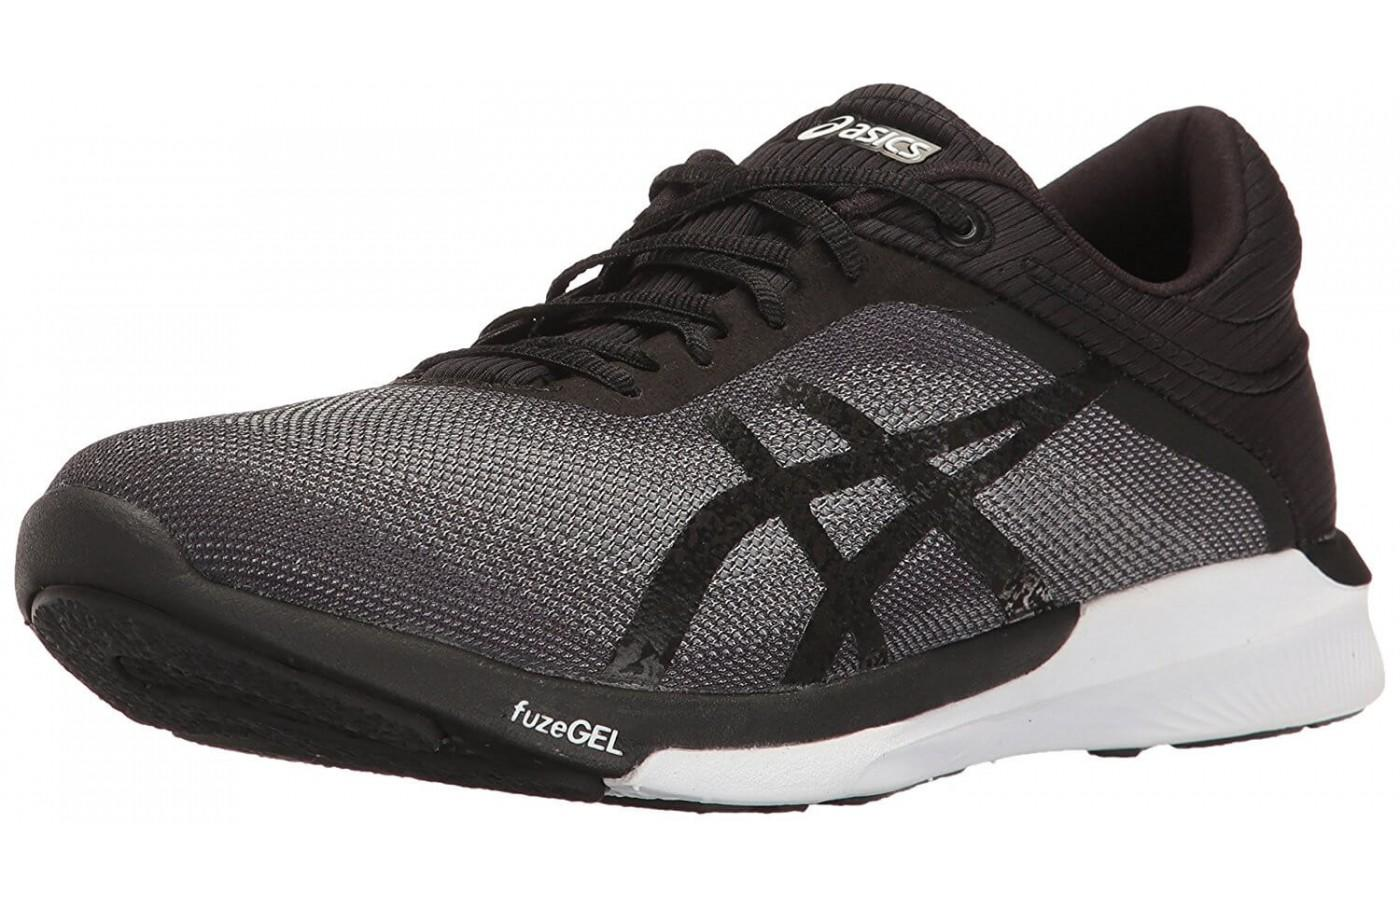 The Asics Fuze X Rush is a lightweight shoe for the runner who is looking for a short to mid distance running buddy.